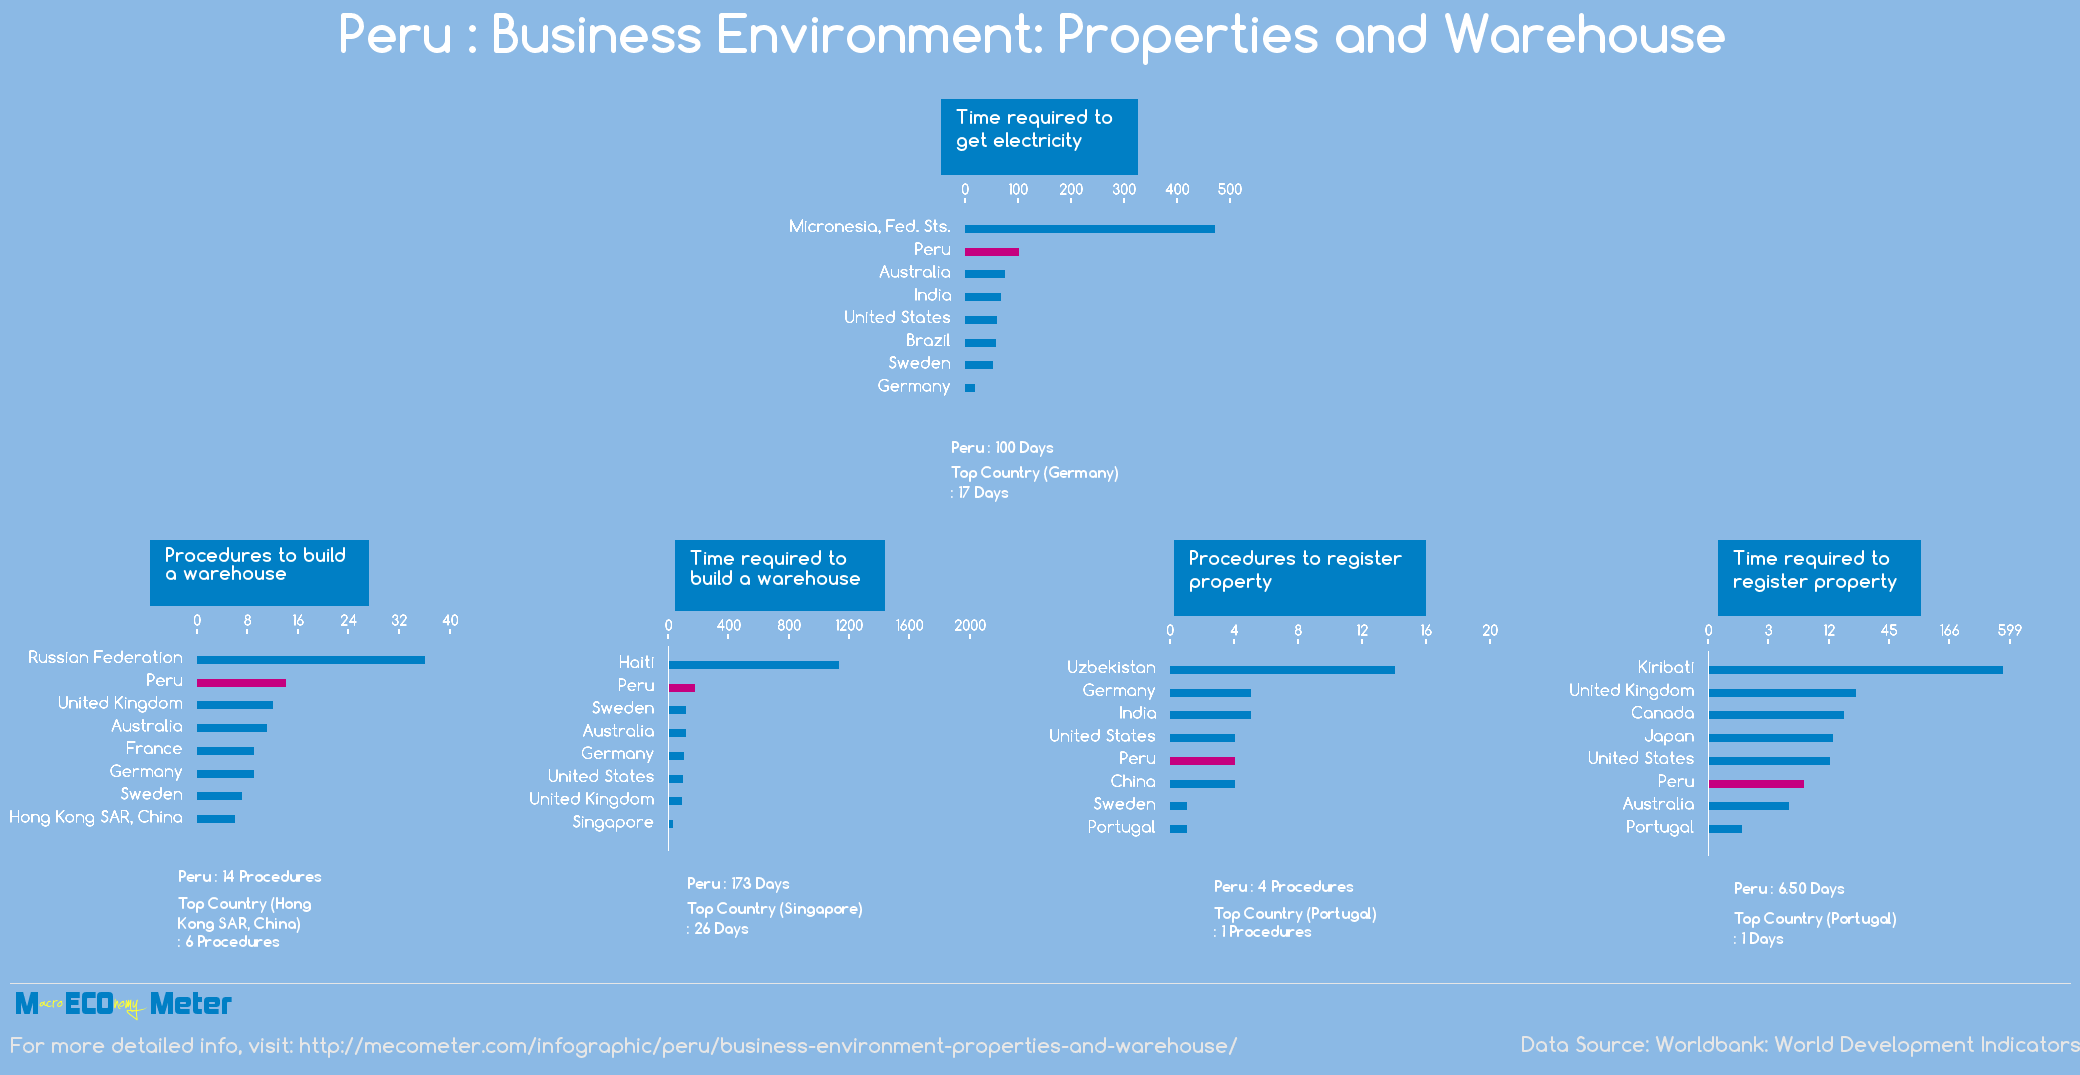 Peru : Business Environment: Properties and Warehouse